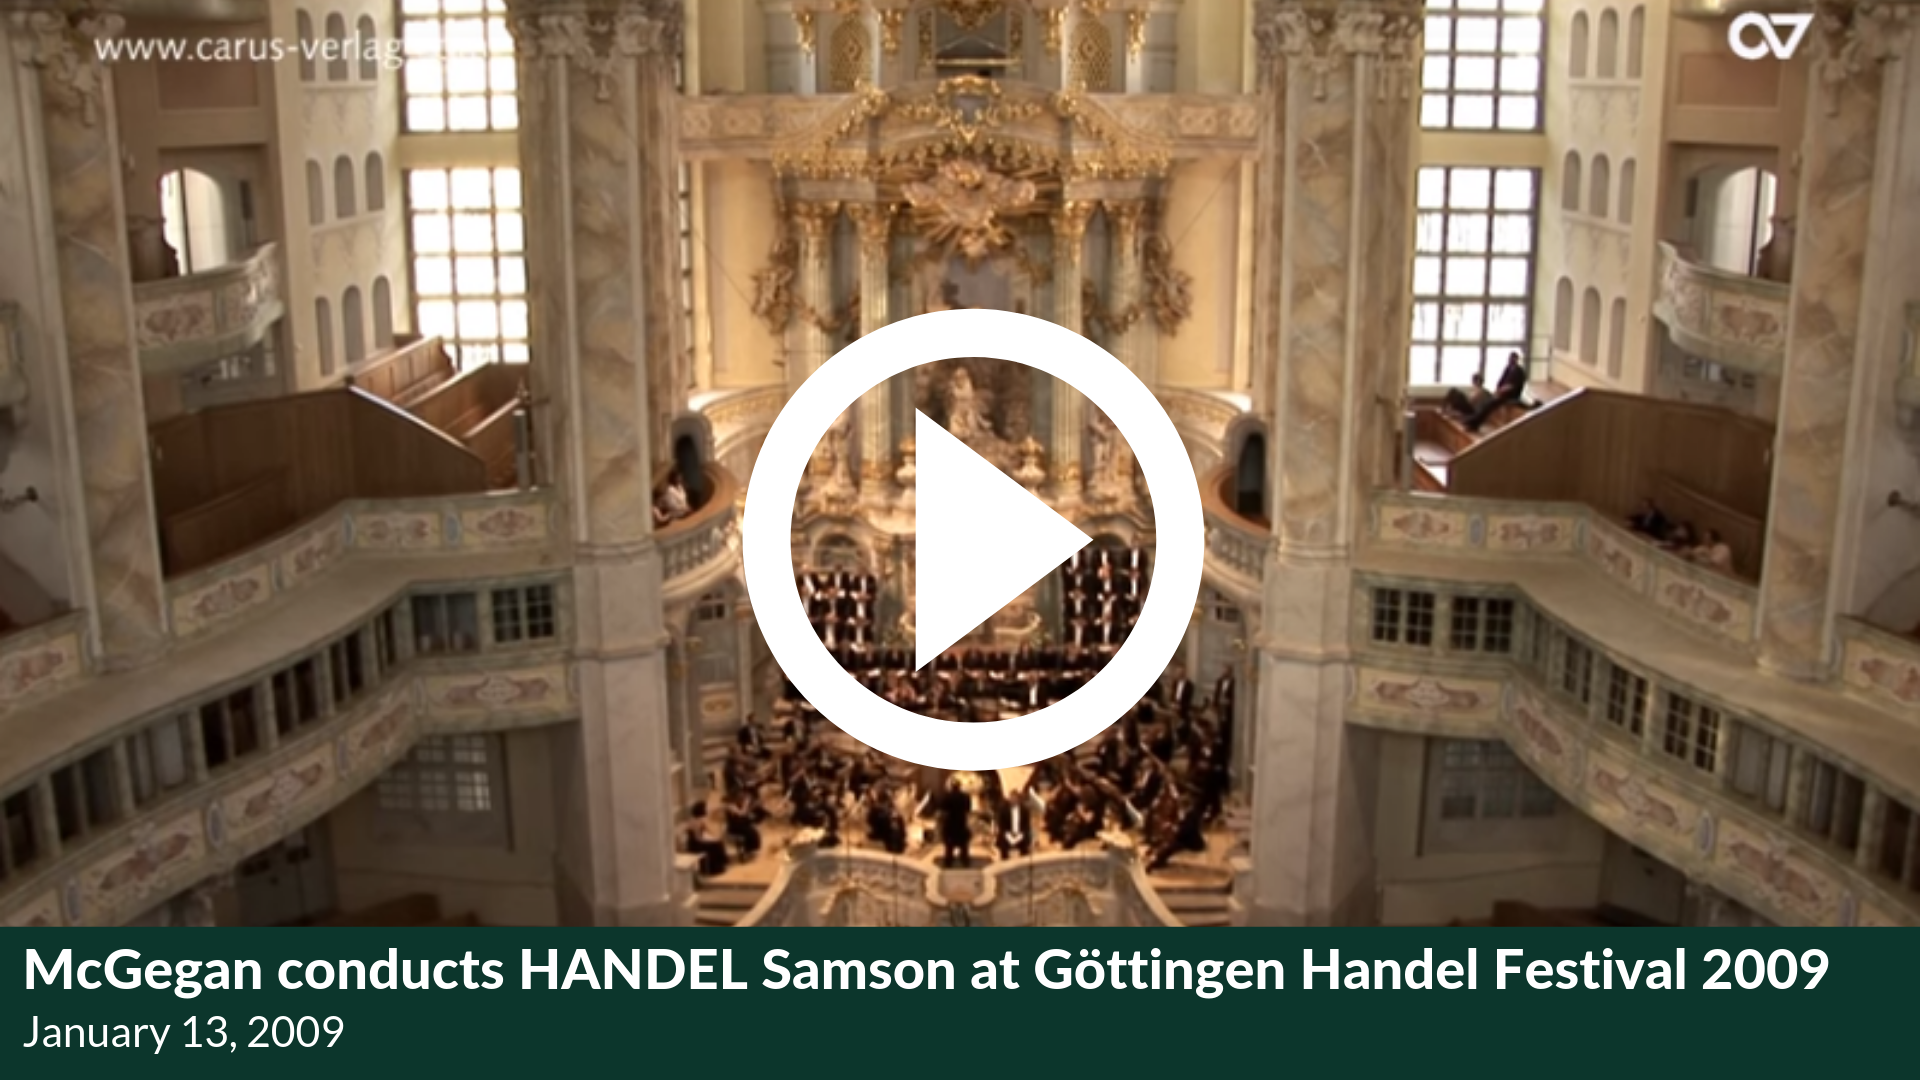 McGegan conducts HANDEL Samson at Göttingen Handel Festival 2009